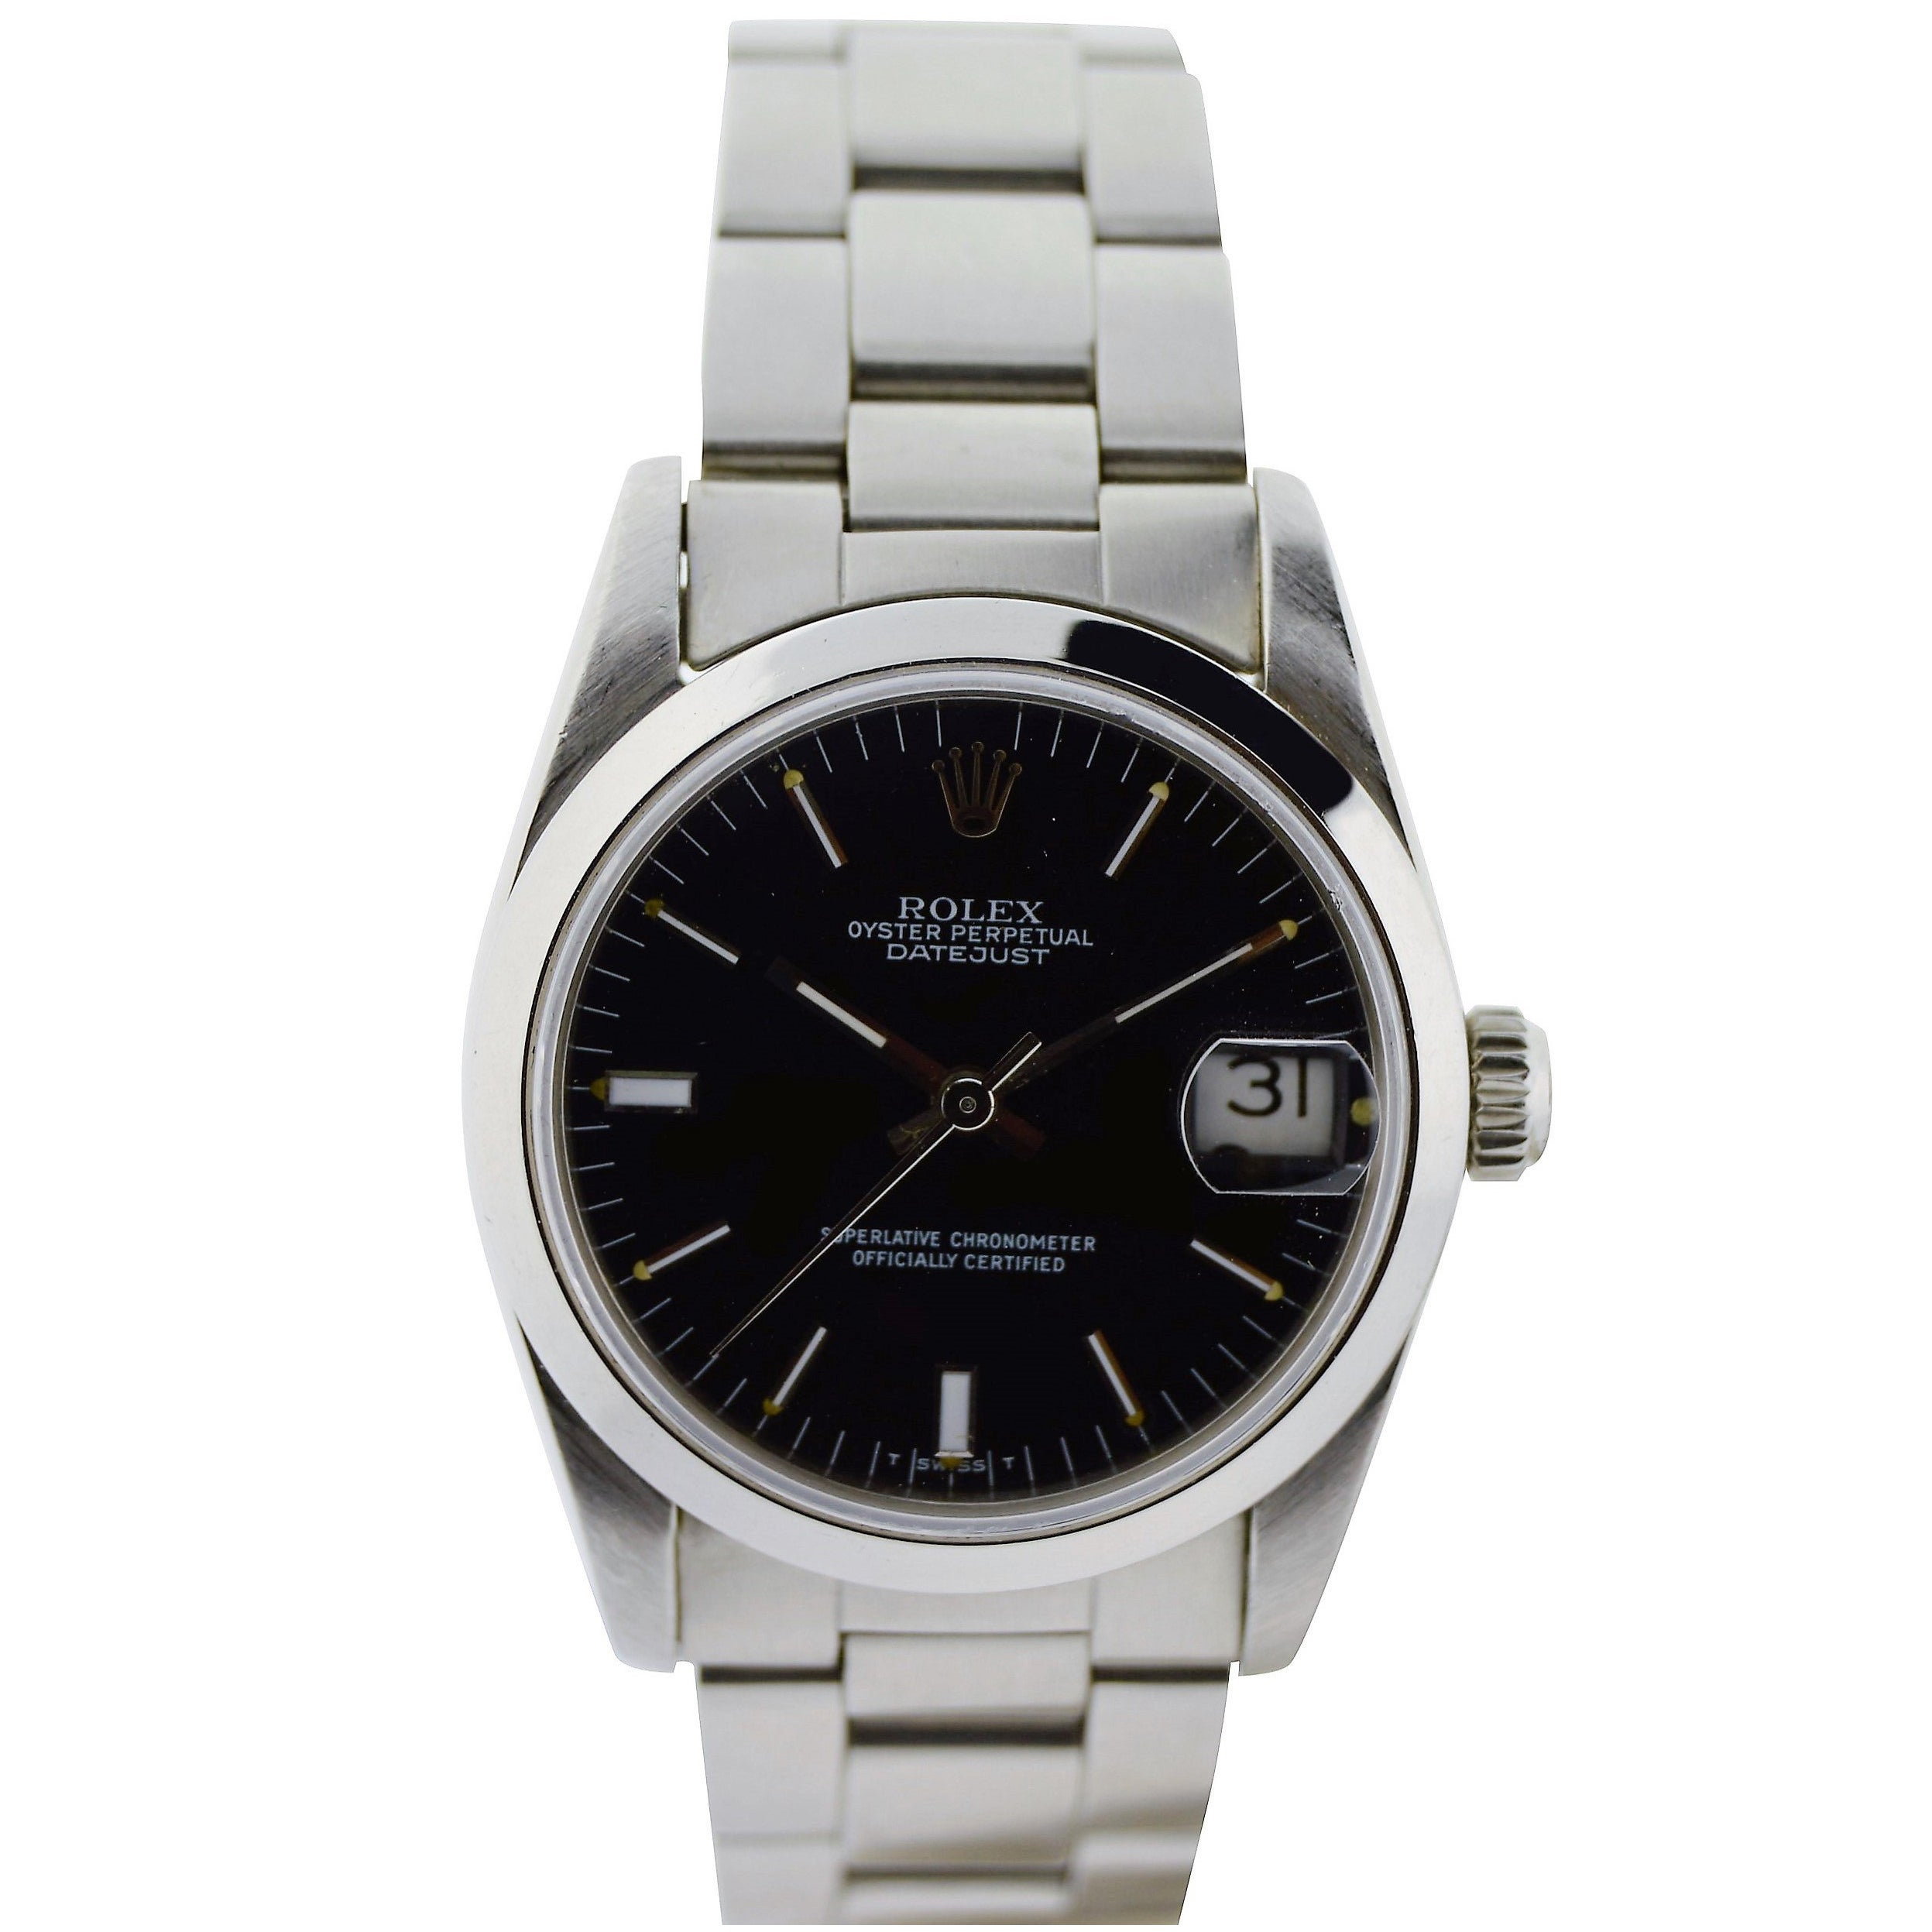 Rolex Stainless Steel Midsize Oyster Perpetual Datejust Watch